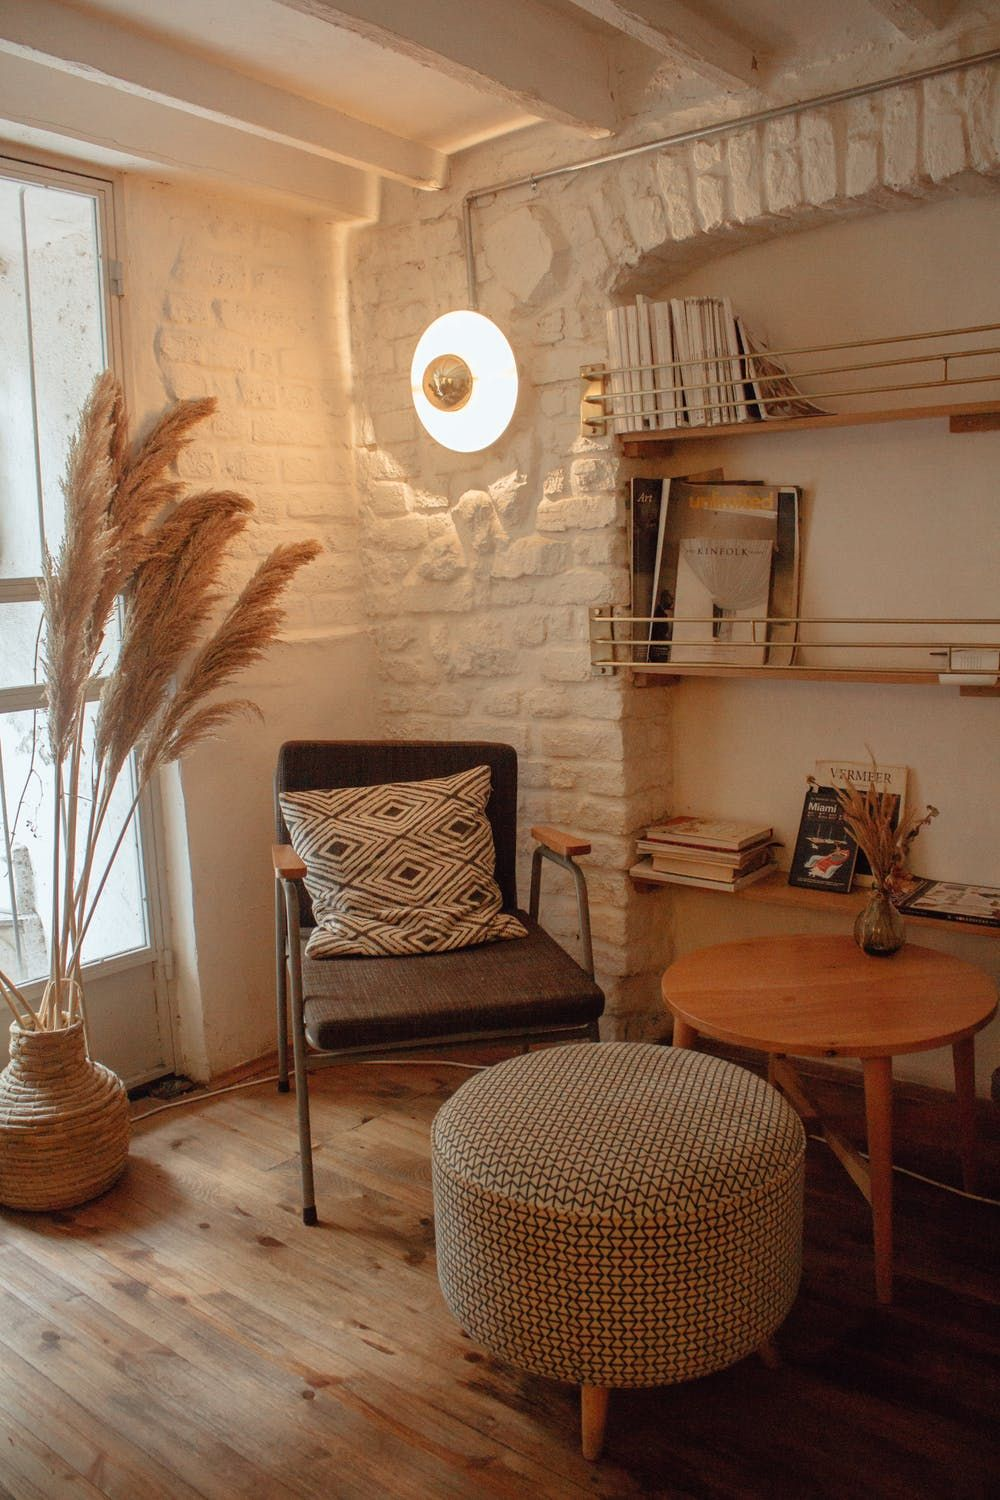 Pin On Home Decor #small #living #room #decoration #tips